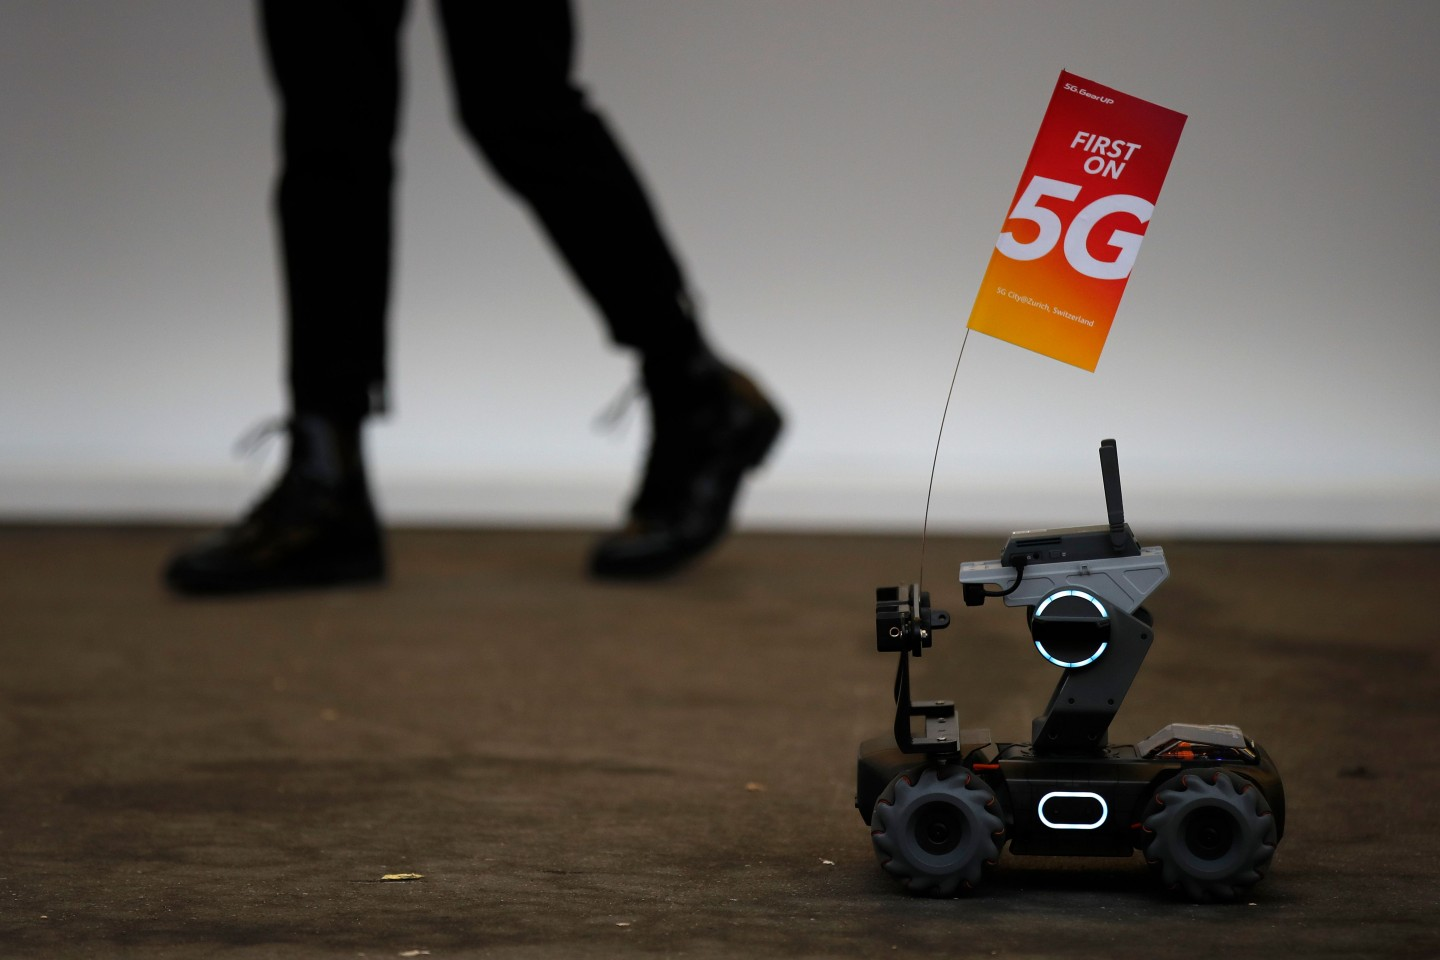 A 5G flag carried by a robot is pictured during the 10th Global mobile broadband forum hosted by Huawei in Zurich on October 15, 2019. - Chinese telecom giant Huawei announced on October 16, 2019 that it has passed the 400,000 5G antennas mark, the fifth generation of mobile phones, in the world with 56 operators who have already started to roll out the new mobile network. (Photo by STEFAN WERMUTH / AFP)